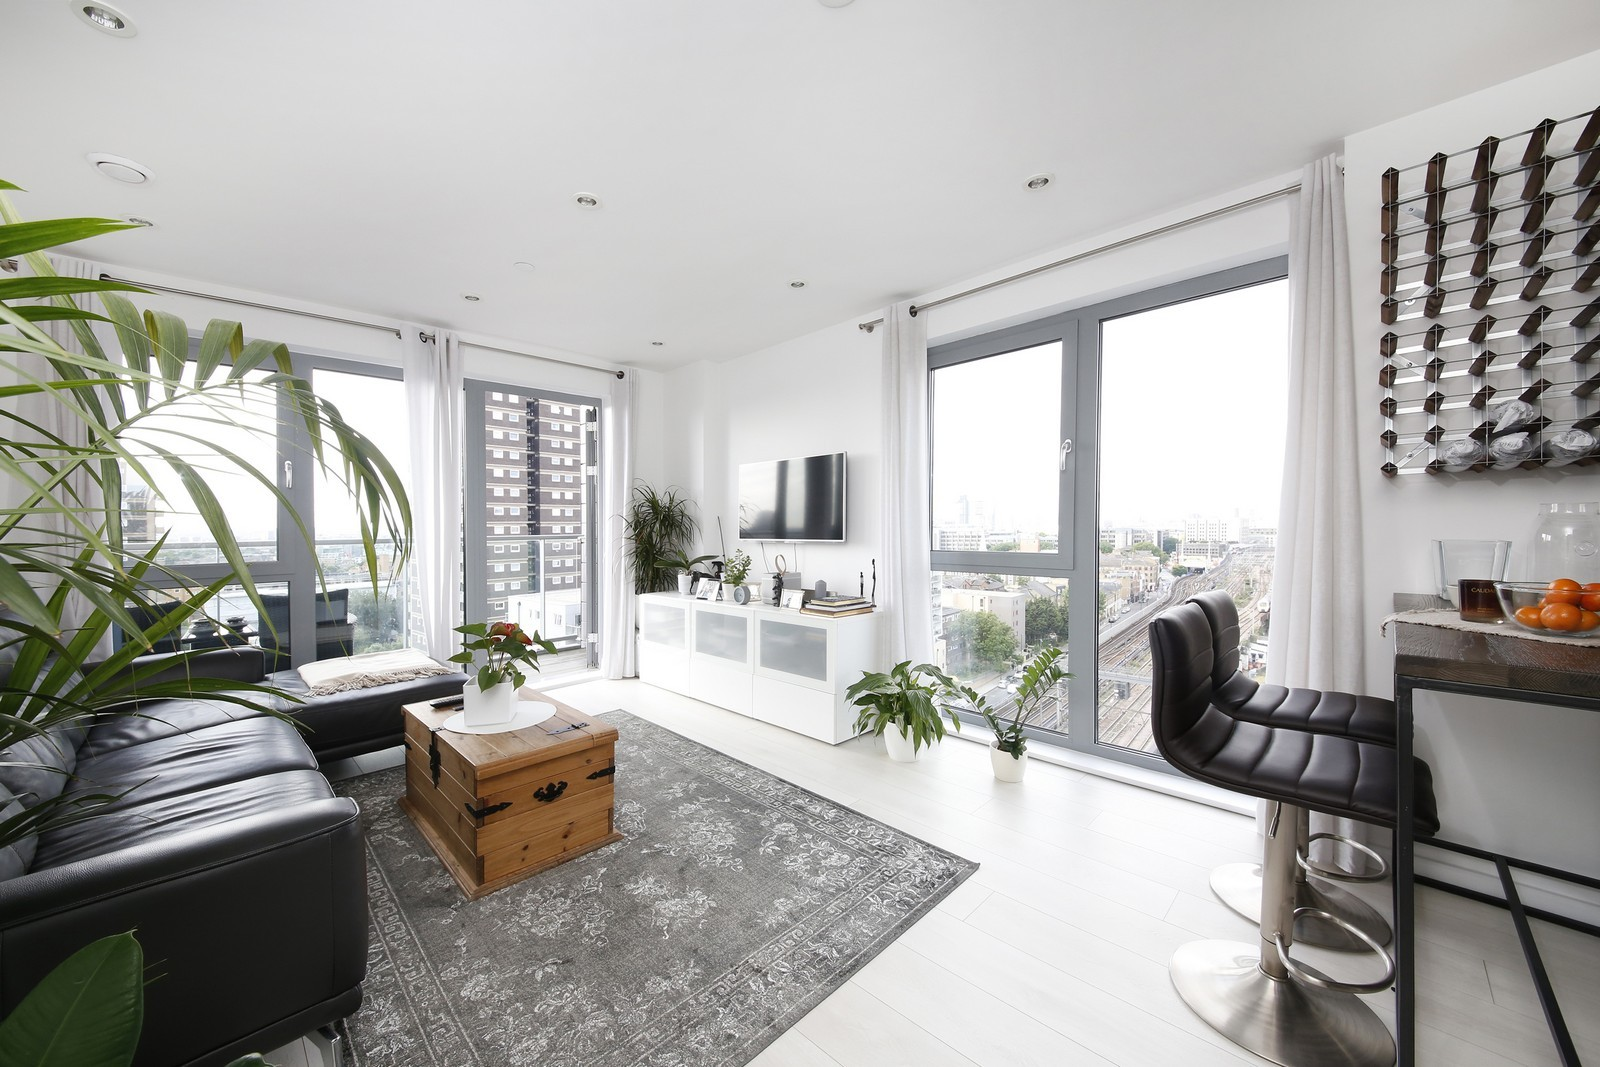 2 BEDROOM FLAT WILSON TOWER For Sale in London | Ready ...